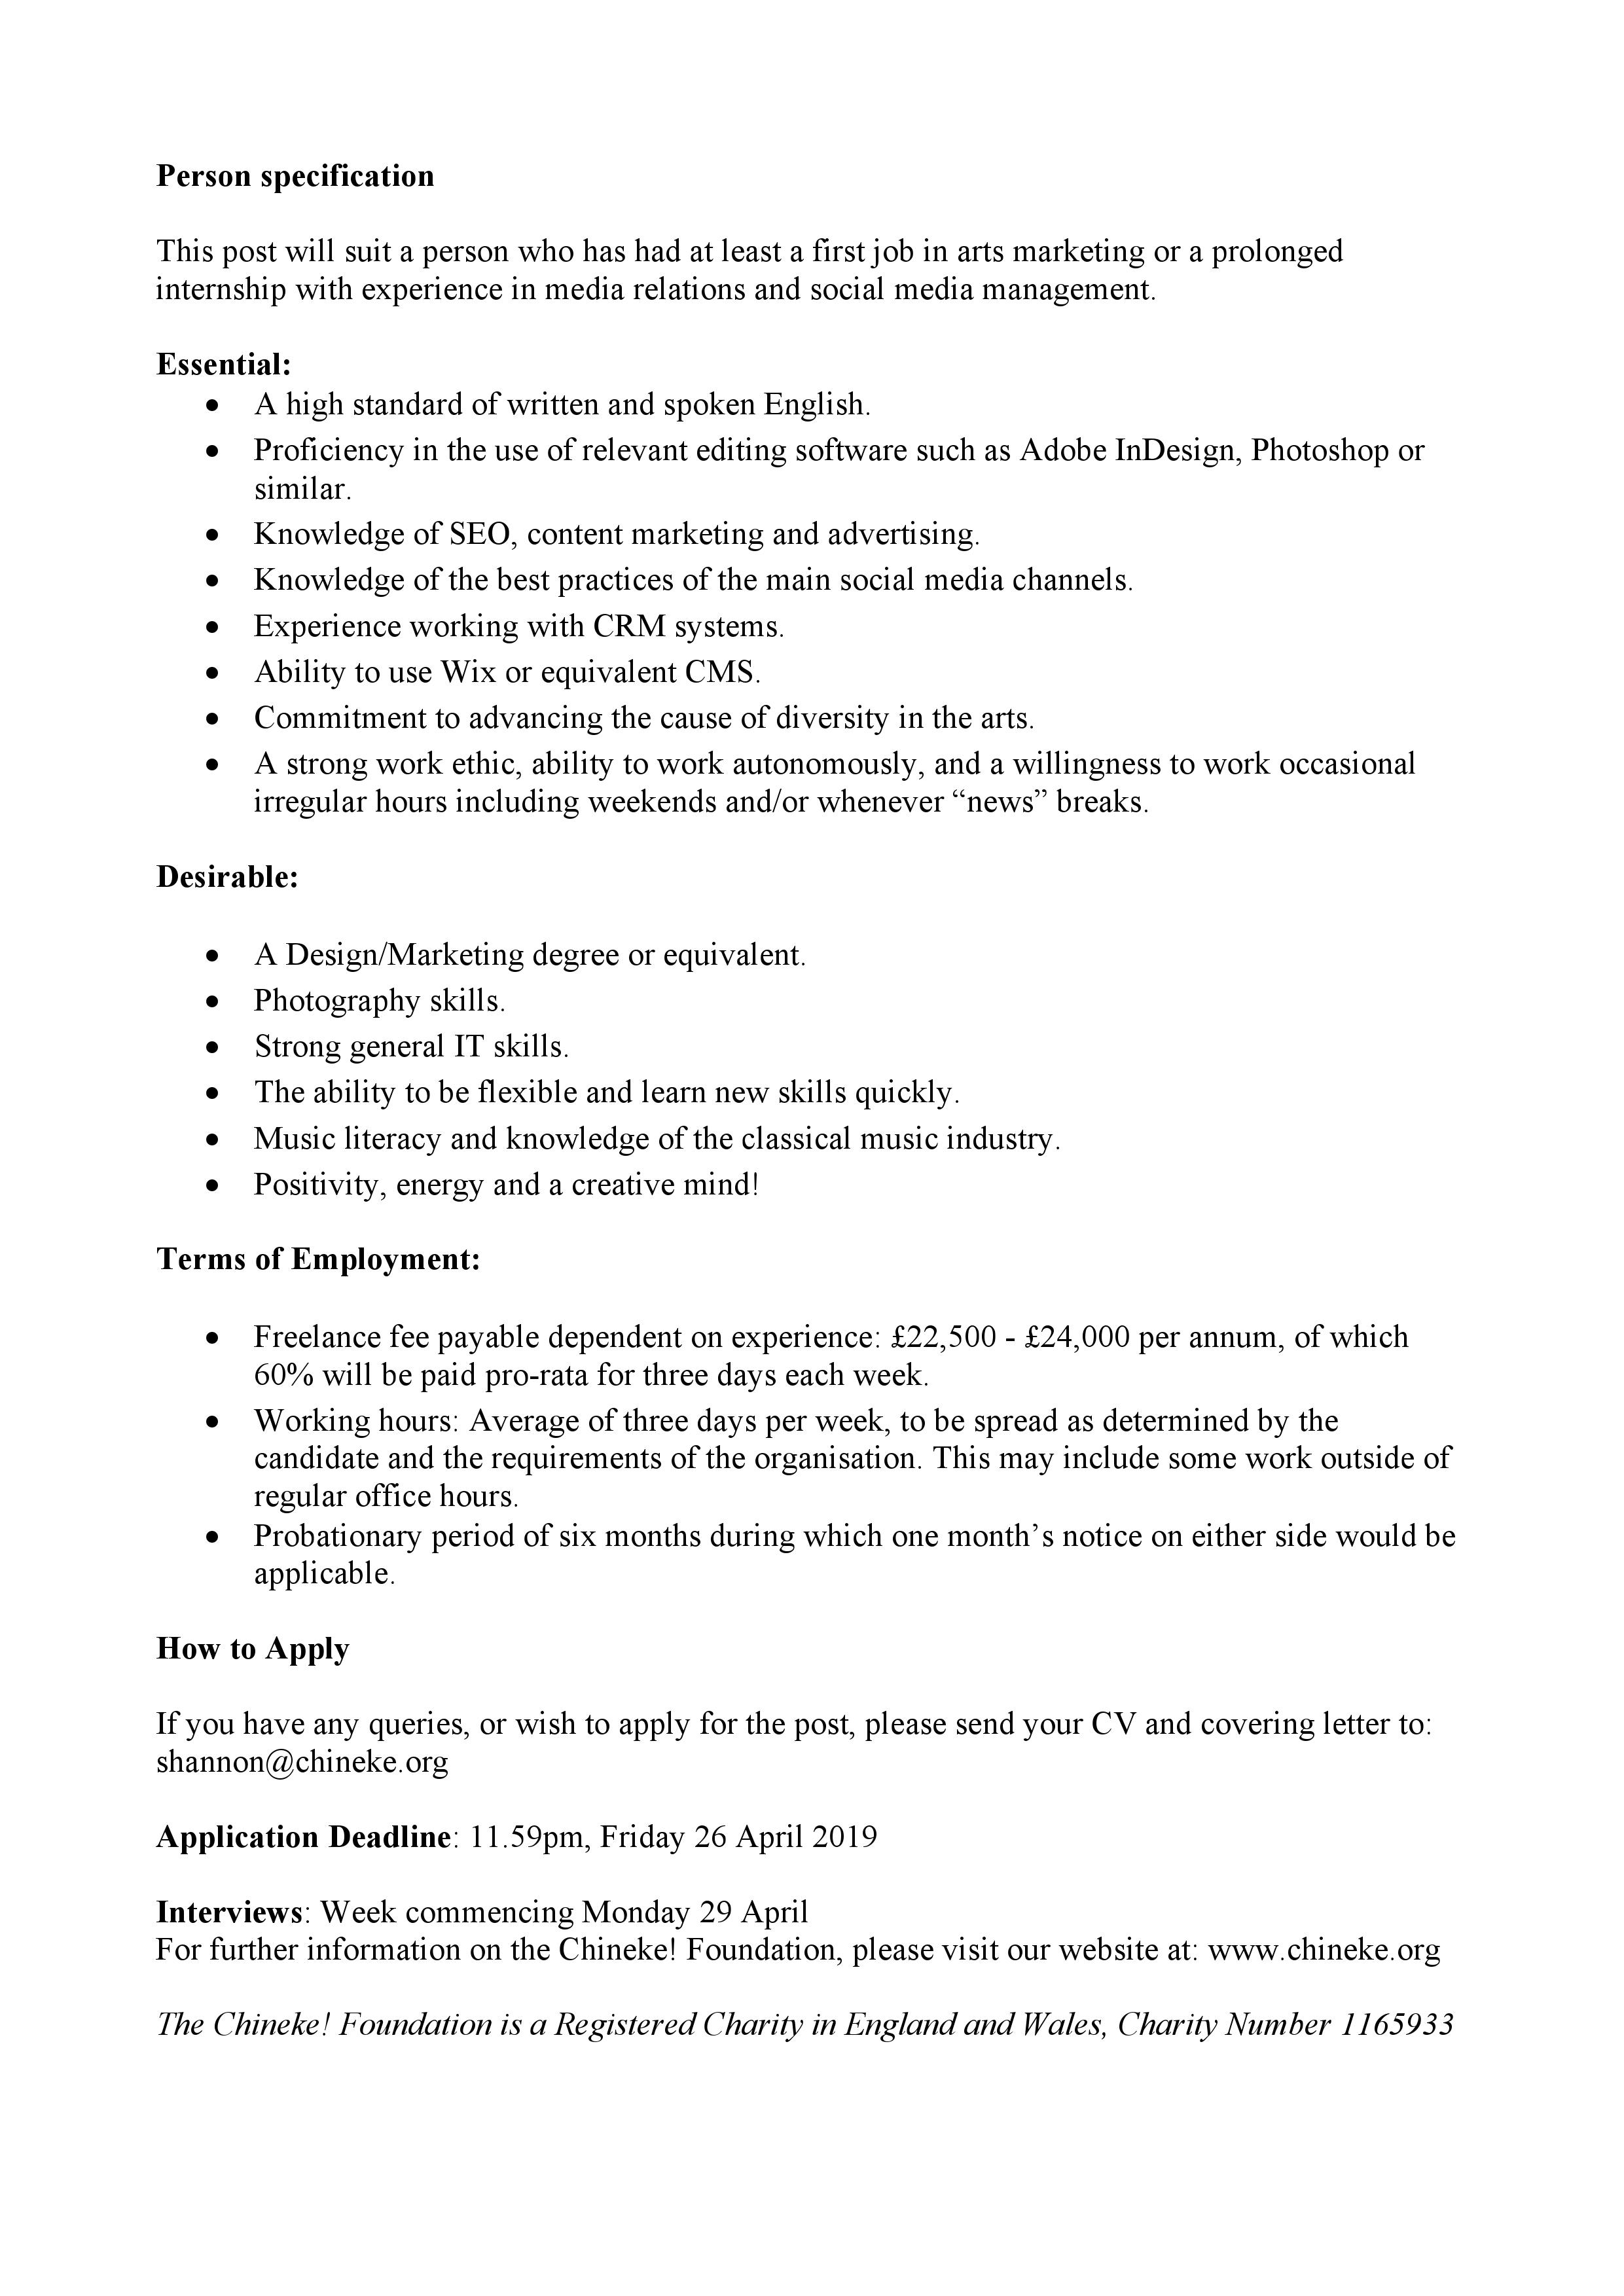 Marketing & PR Officer Job Description and Person Spec, April 2019_3.jpg